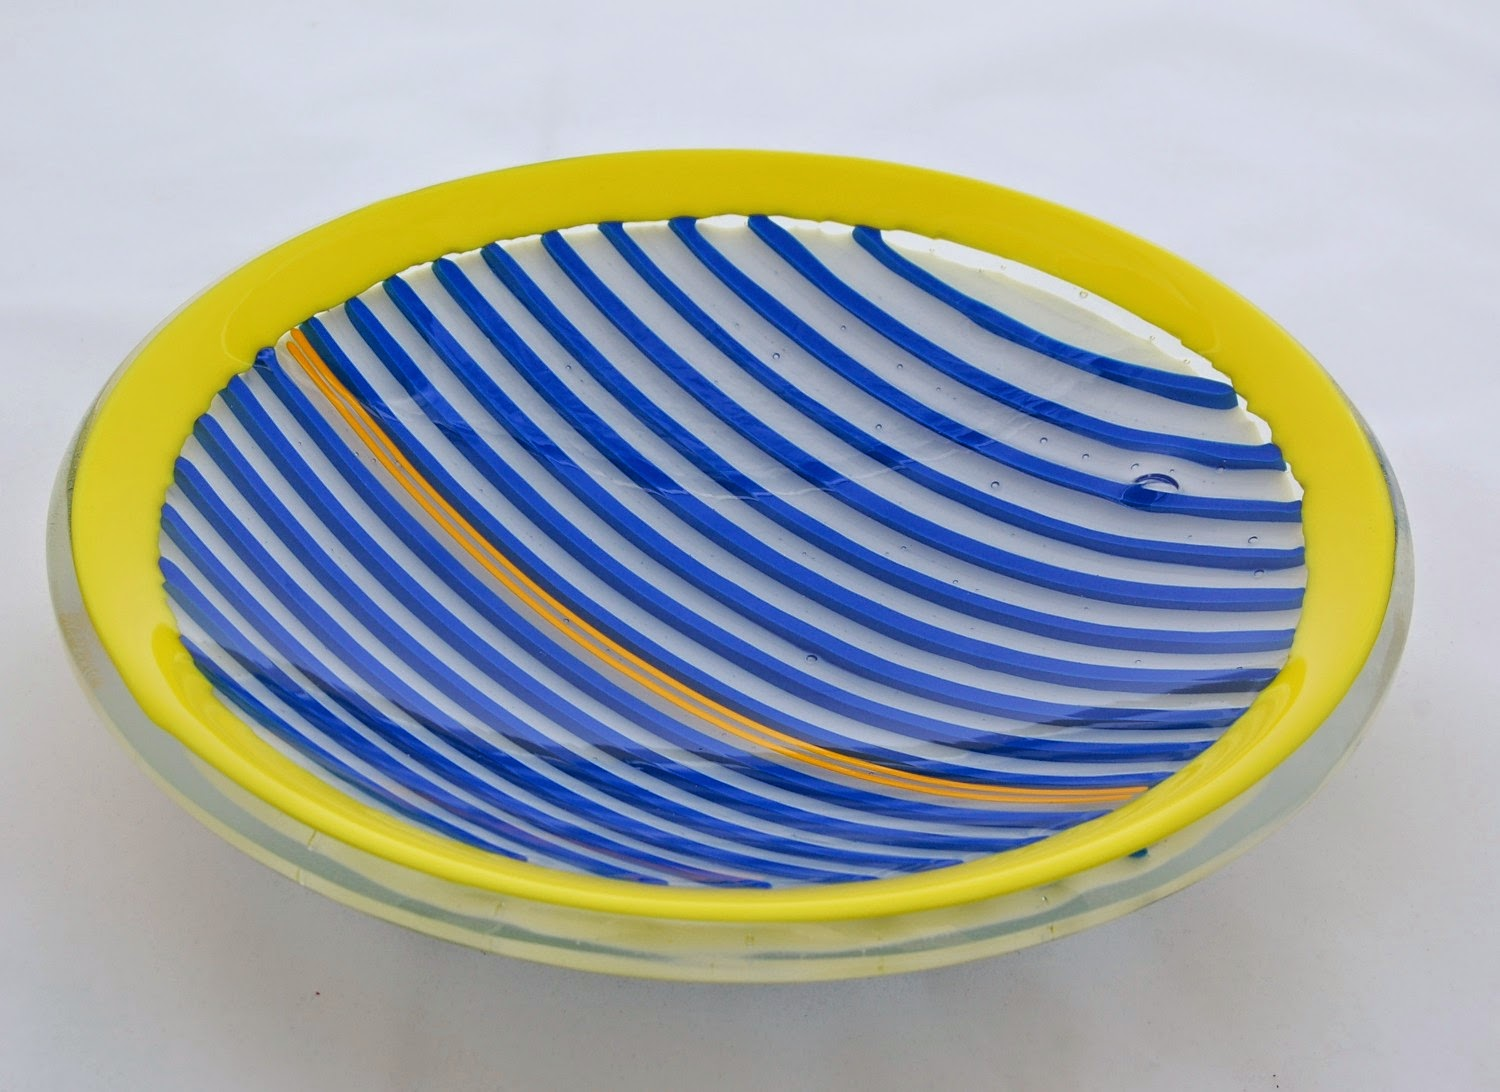 Blue, white, and yellow strip construction bowl